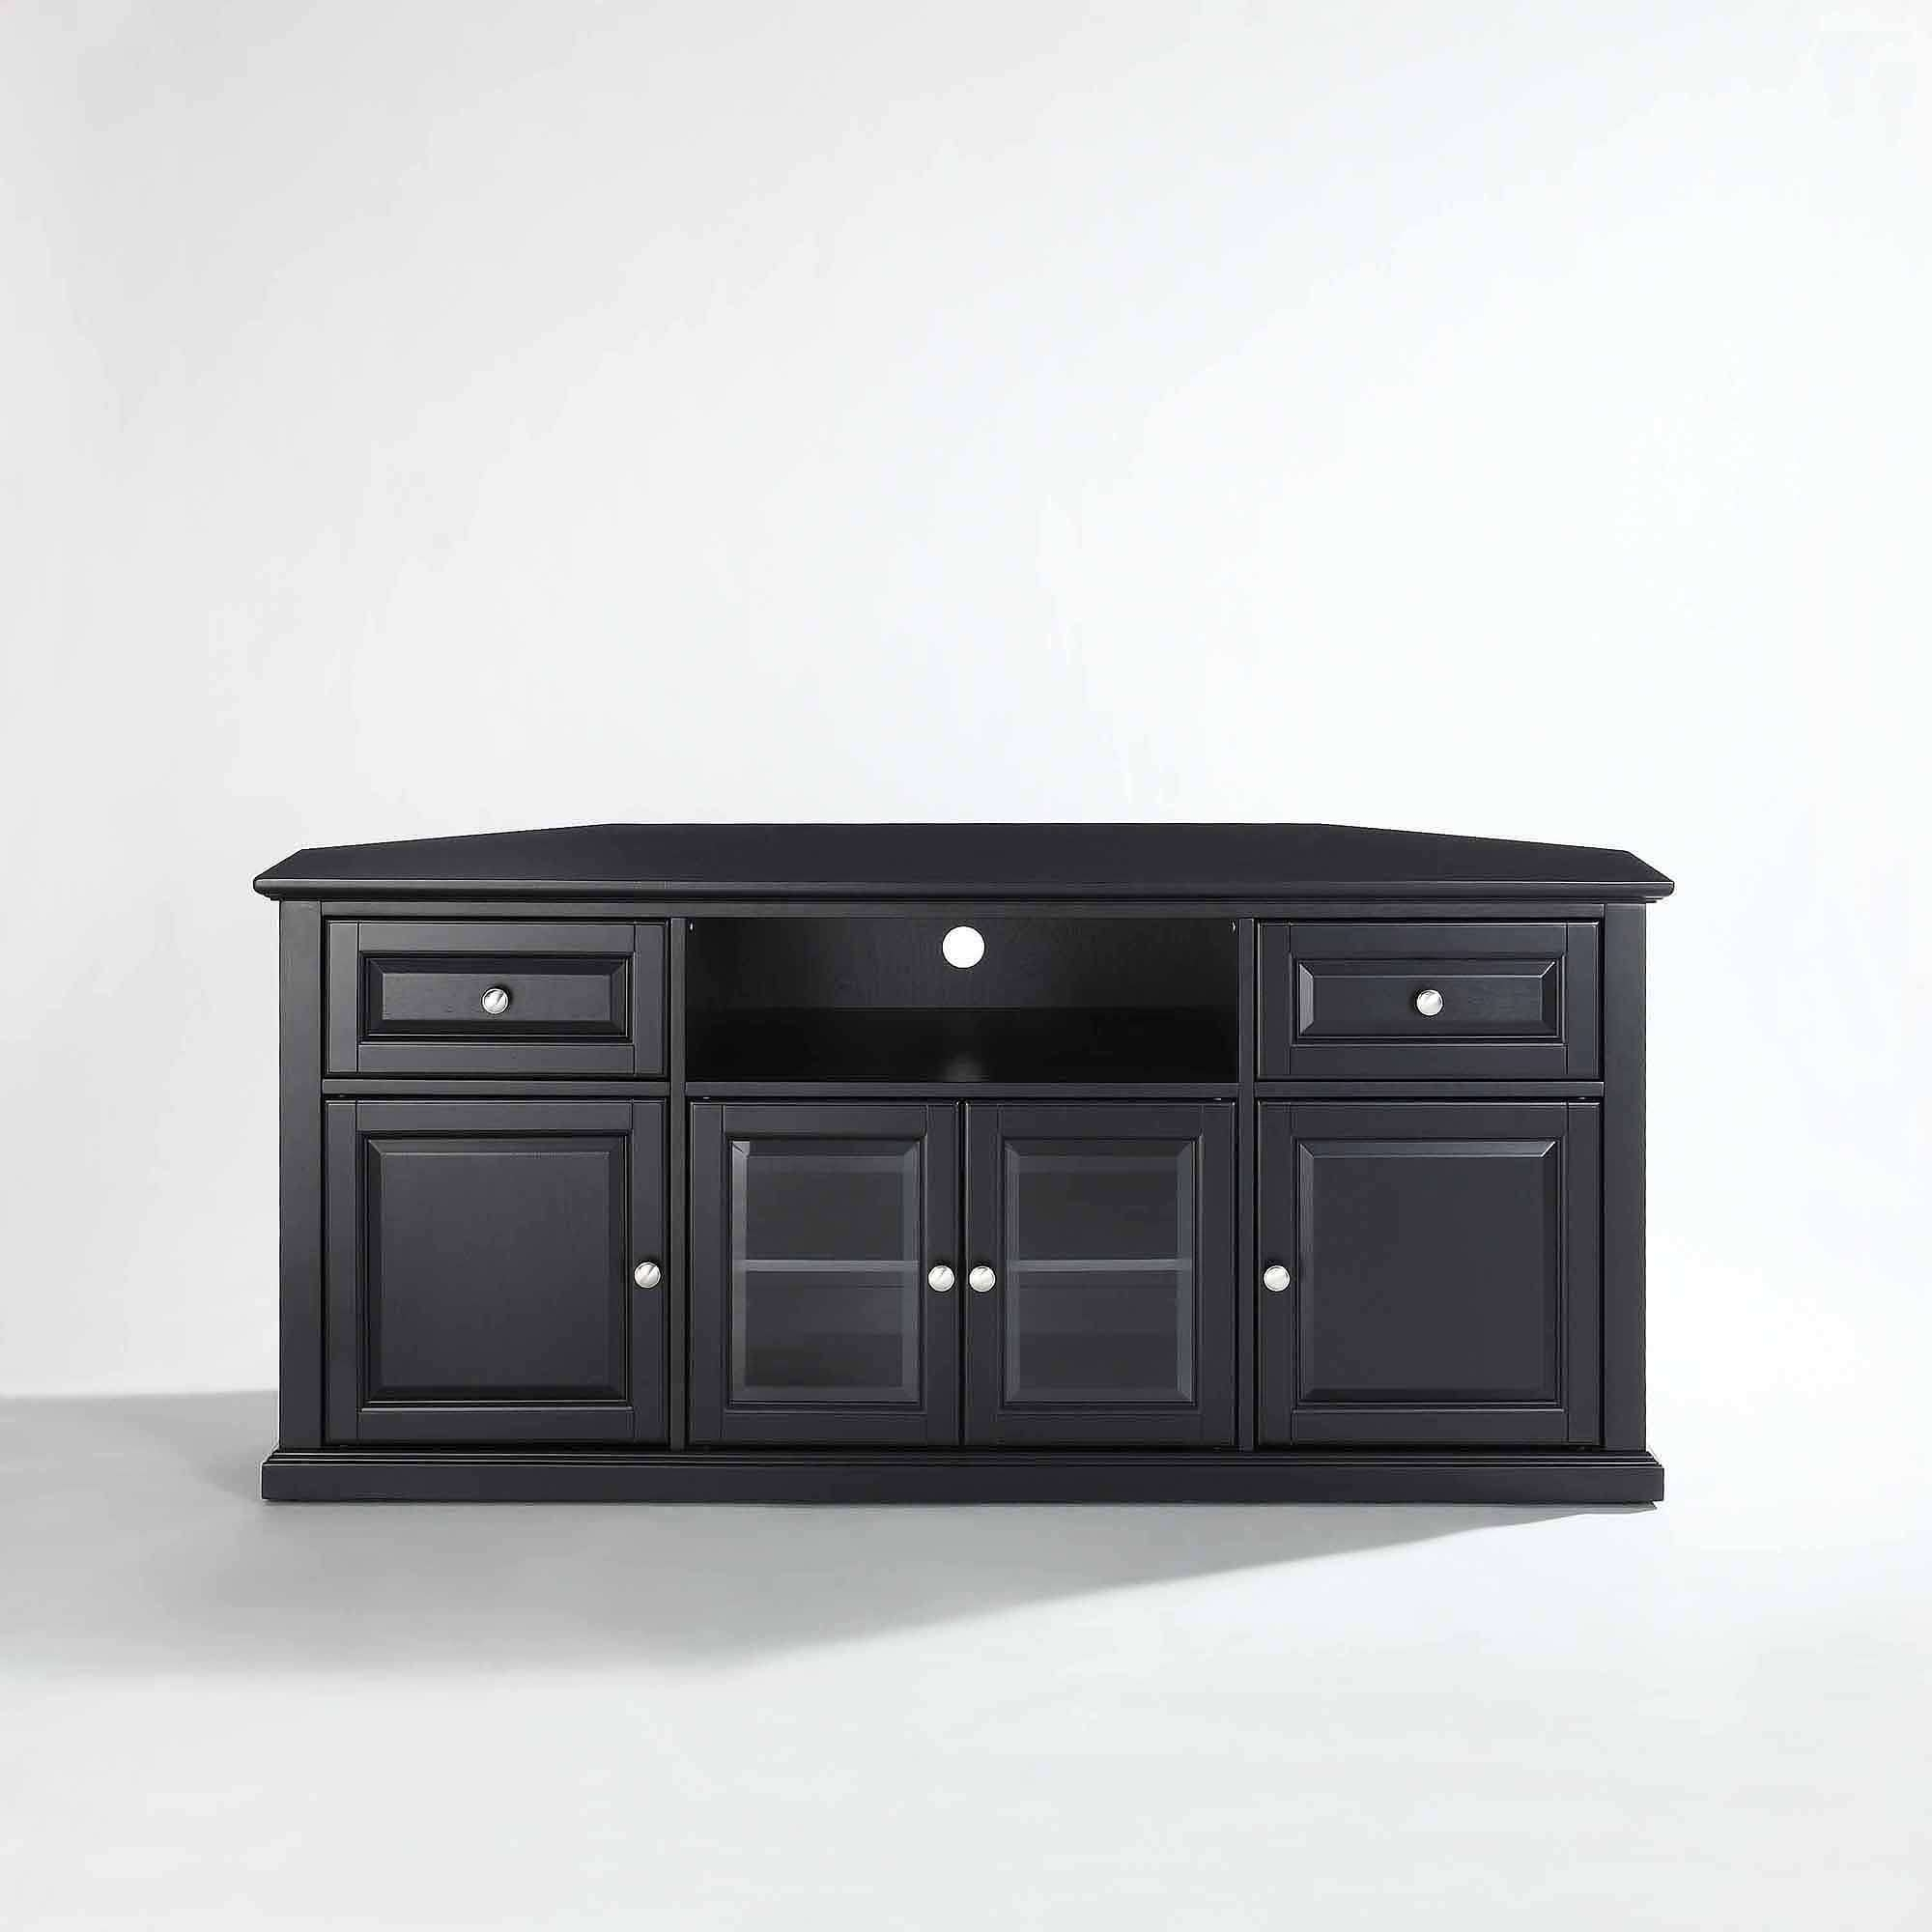 Tv : Astounding Corner Tv Stands For 46 Inch Flat Screen Satiating Inside Corner Tv Stands For 46 Inch Flat Screen (View 10 of 15)